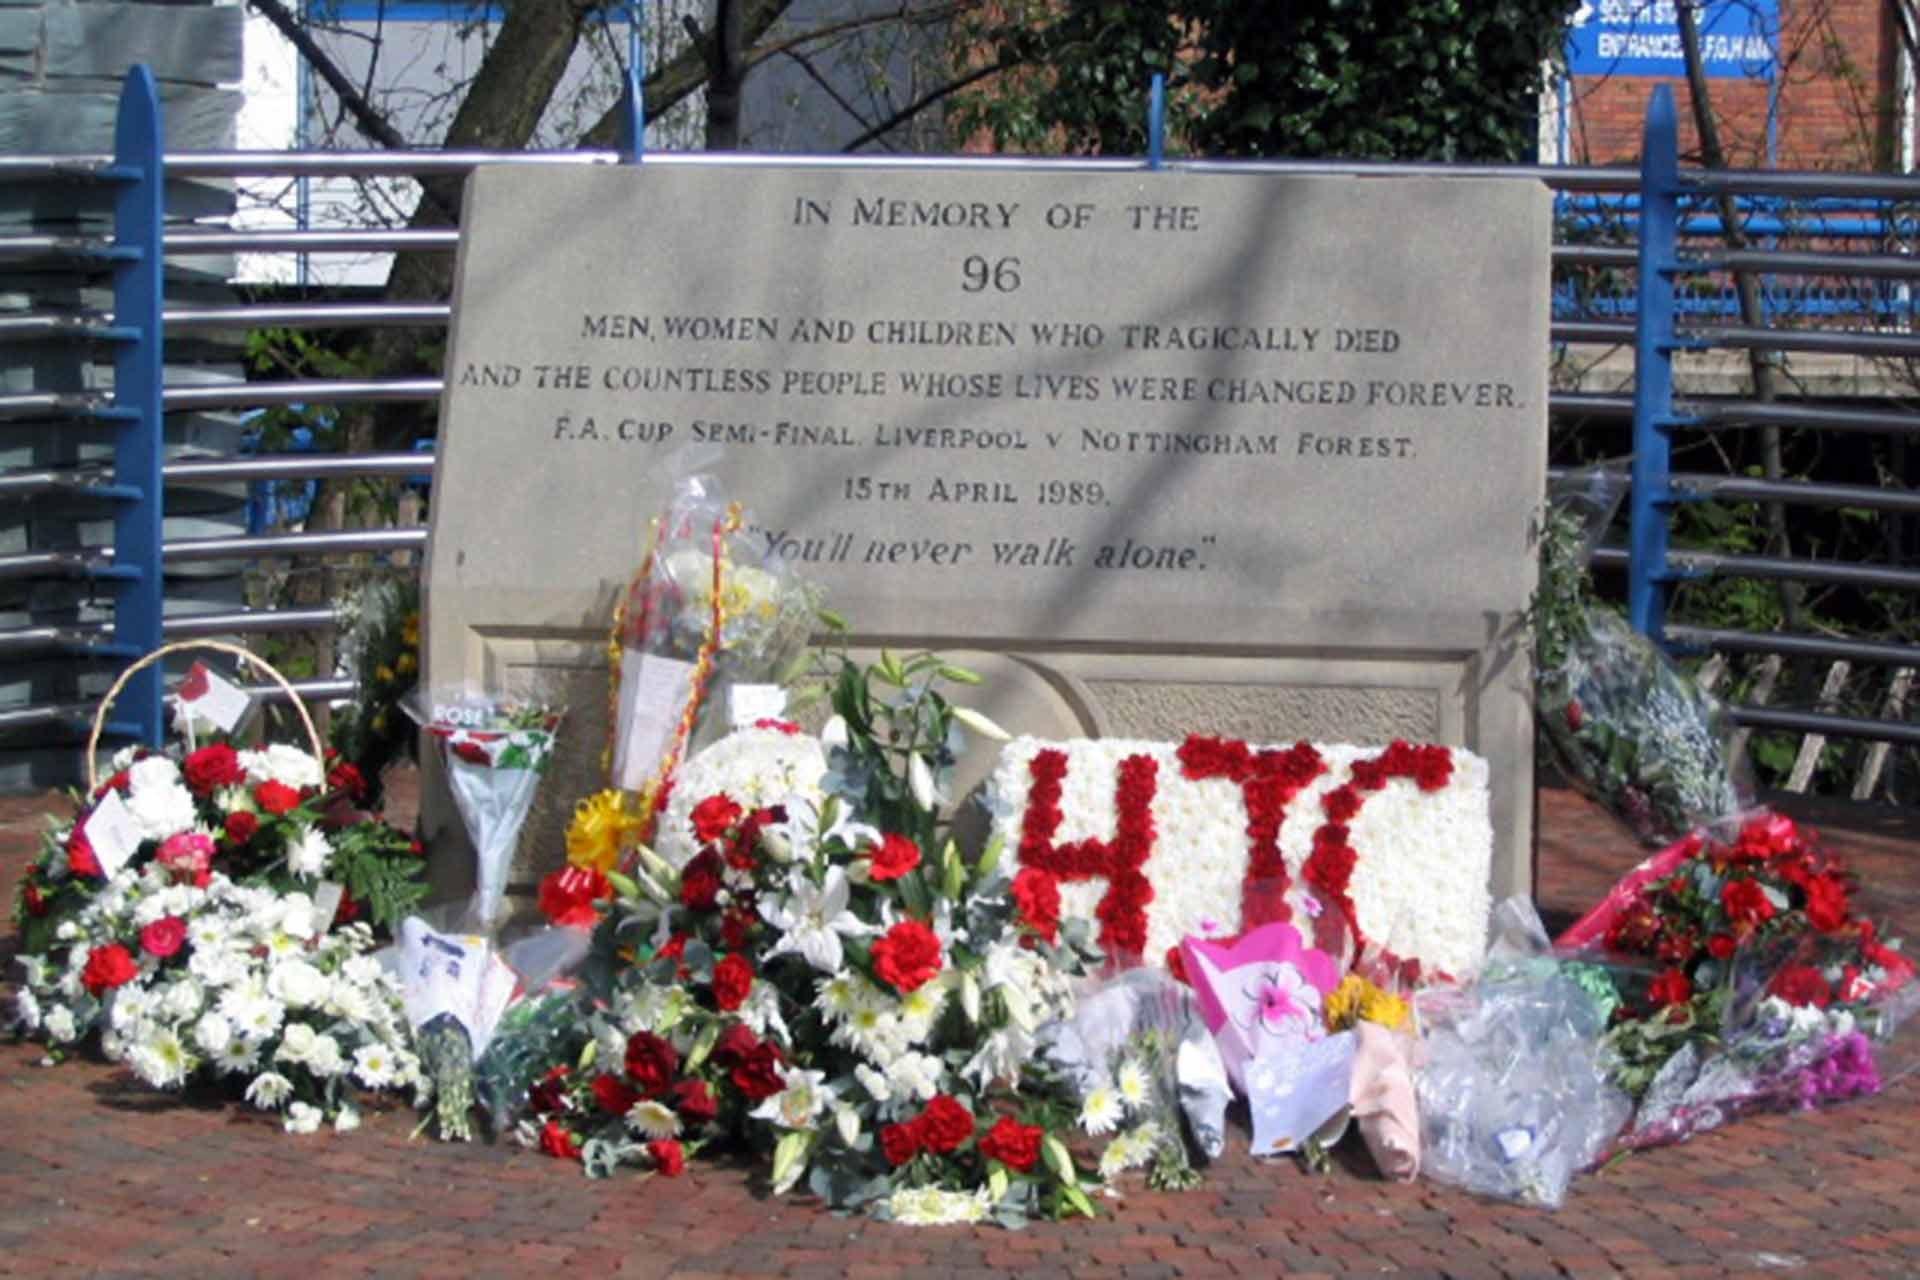 """The Hillsborough memorial, dedicated to the 96 victims of the 1989 """"Hillsborough Disaster"""" (Photo: Dave Pickersgill / Hillsborough Memorial / CC BY-SA 2.0 / Wikimedia Commons)."""